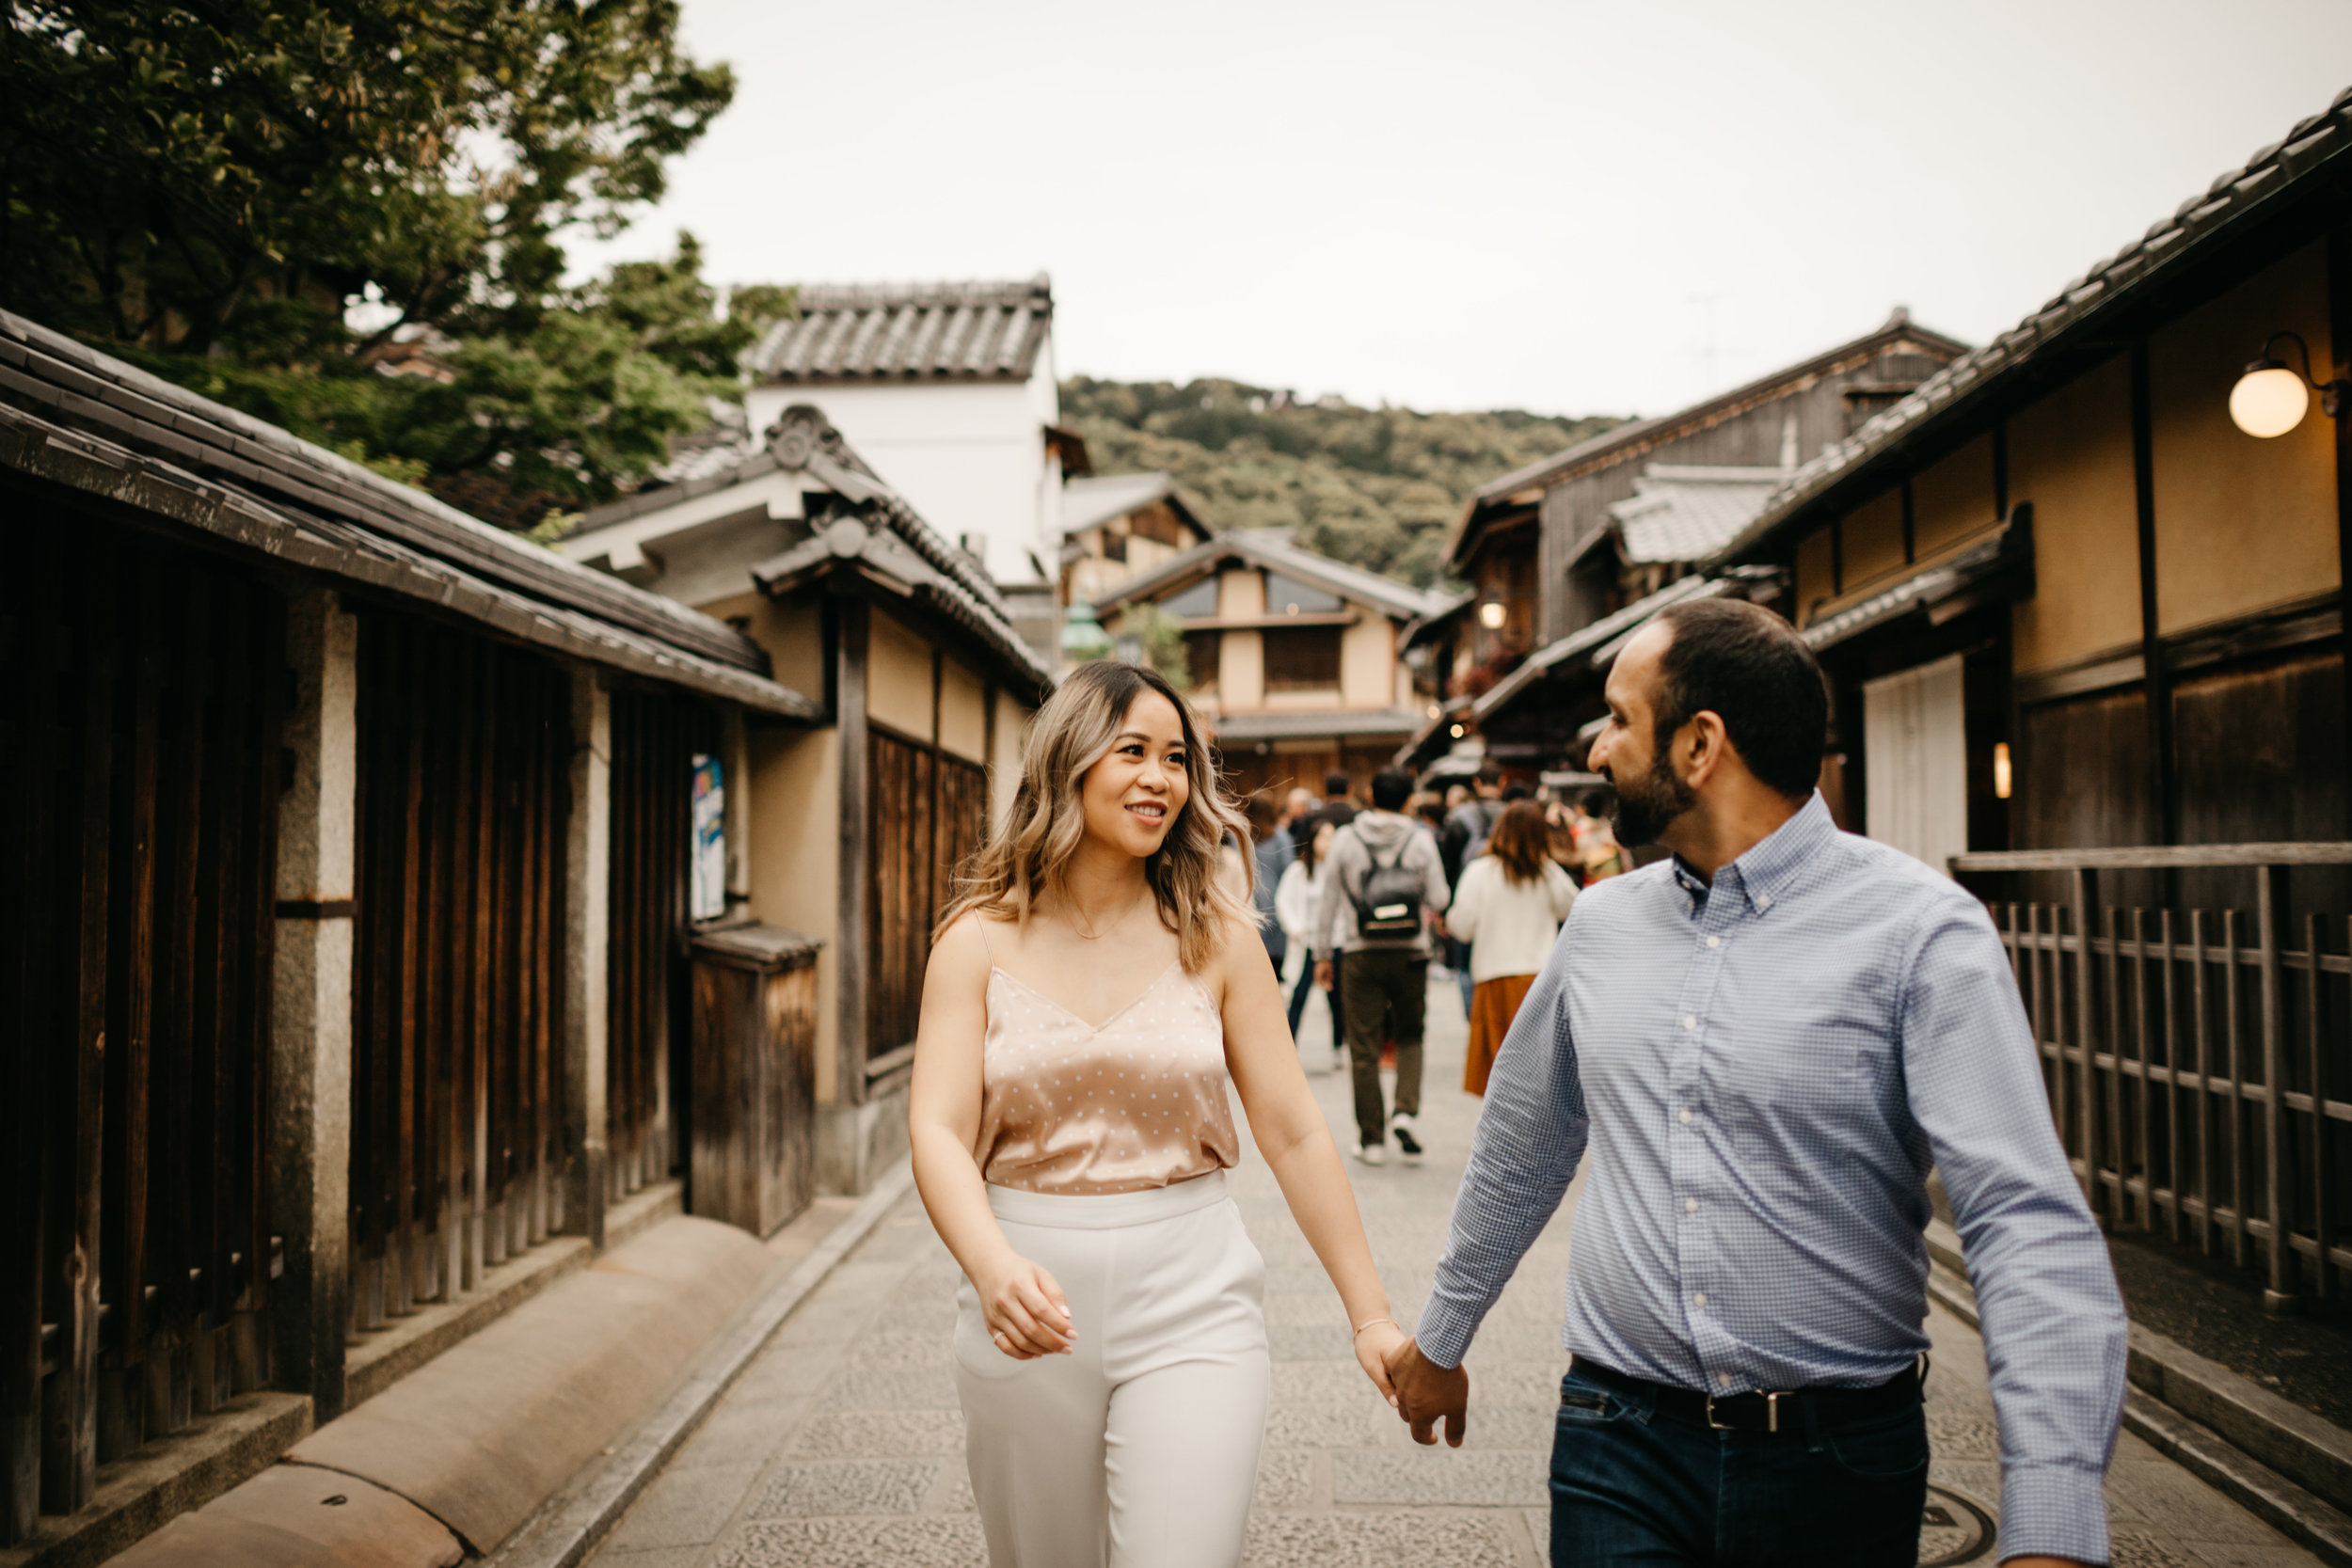 romantic_couples_session_Kyoto_photo_by_samantha_look.jpg